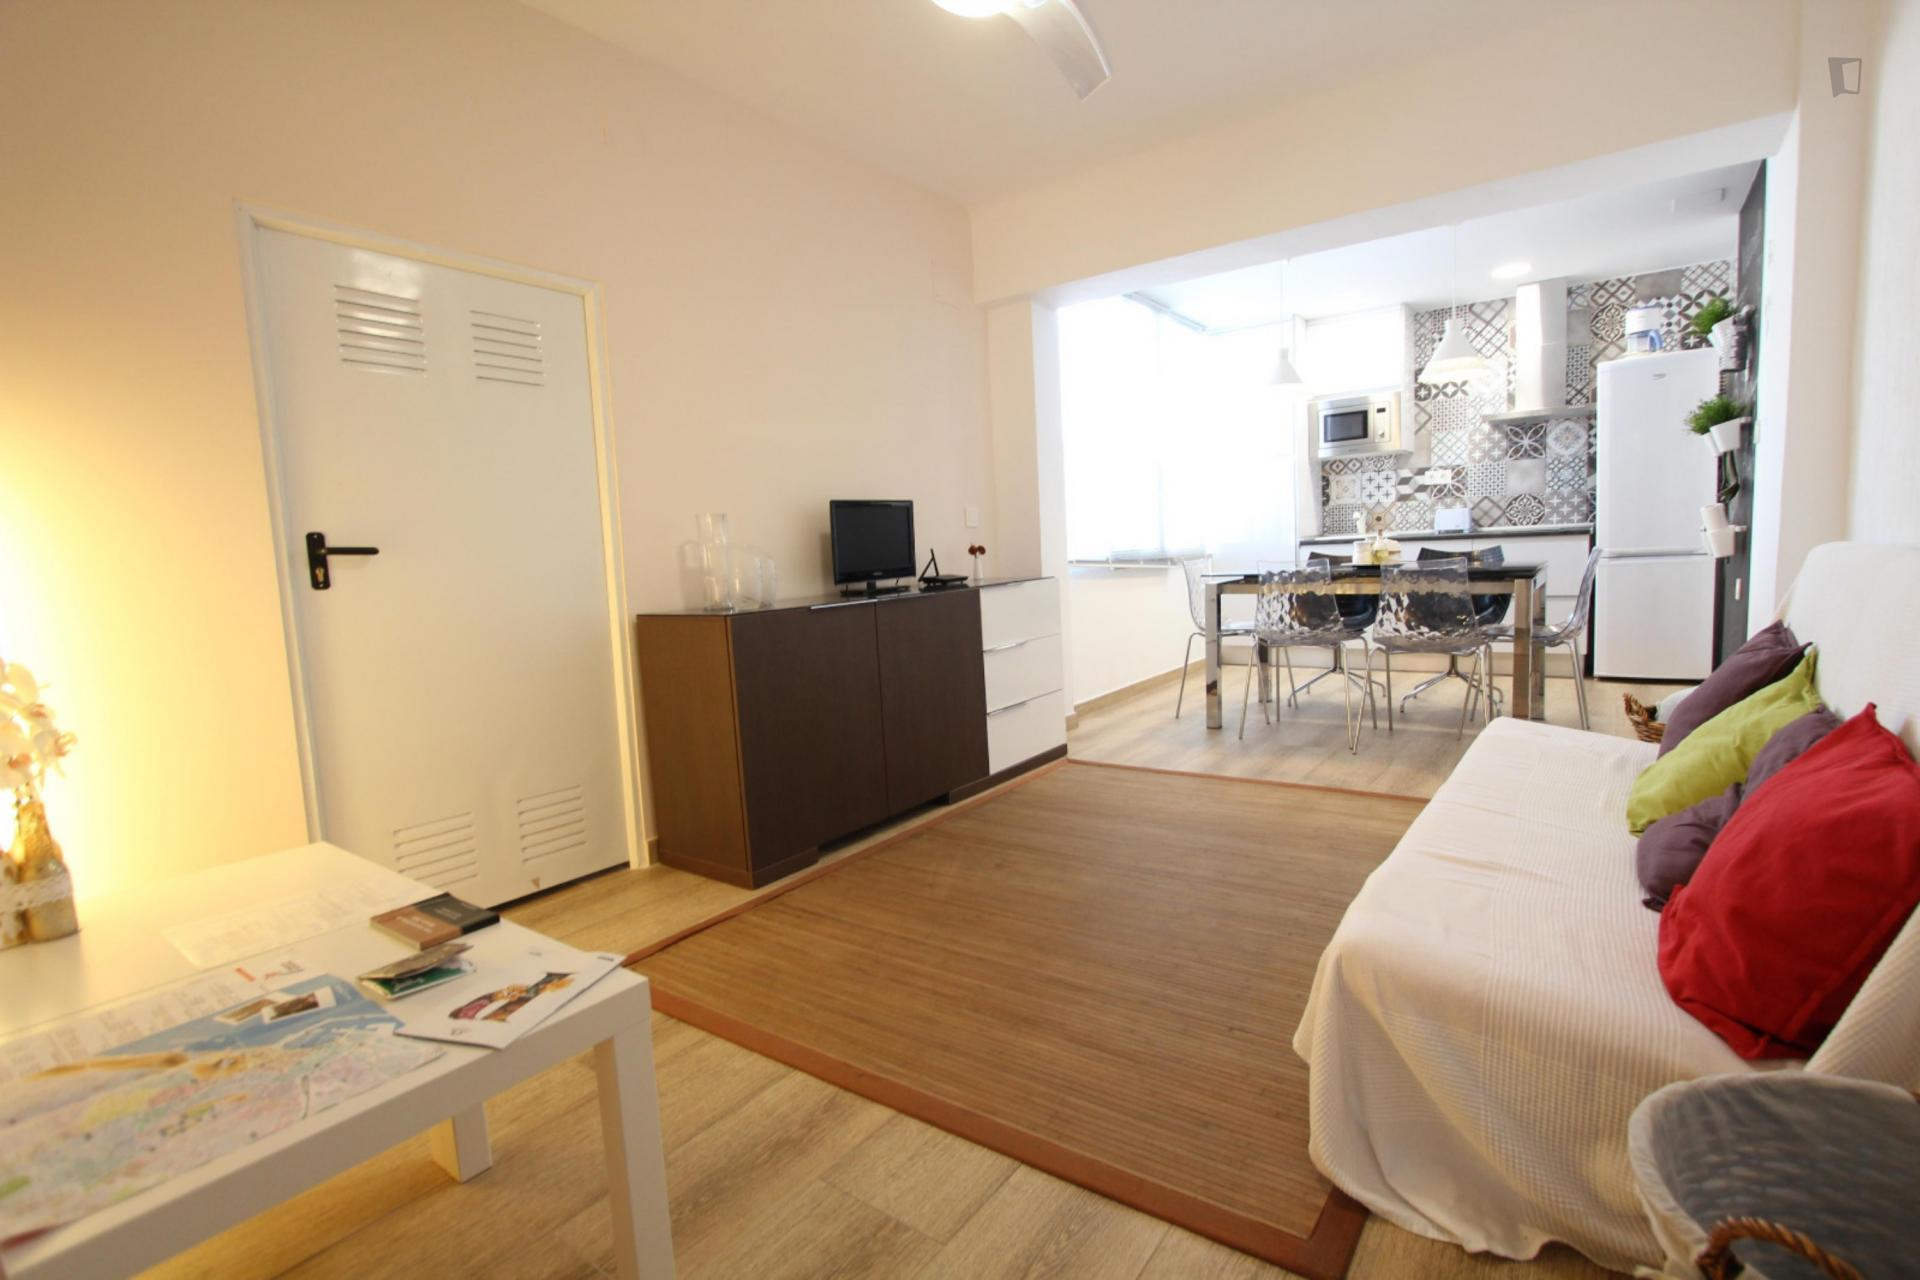 Ceres - Shared apartment in Alicante for expats